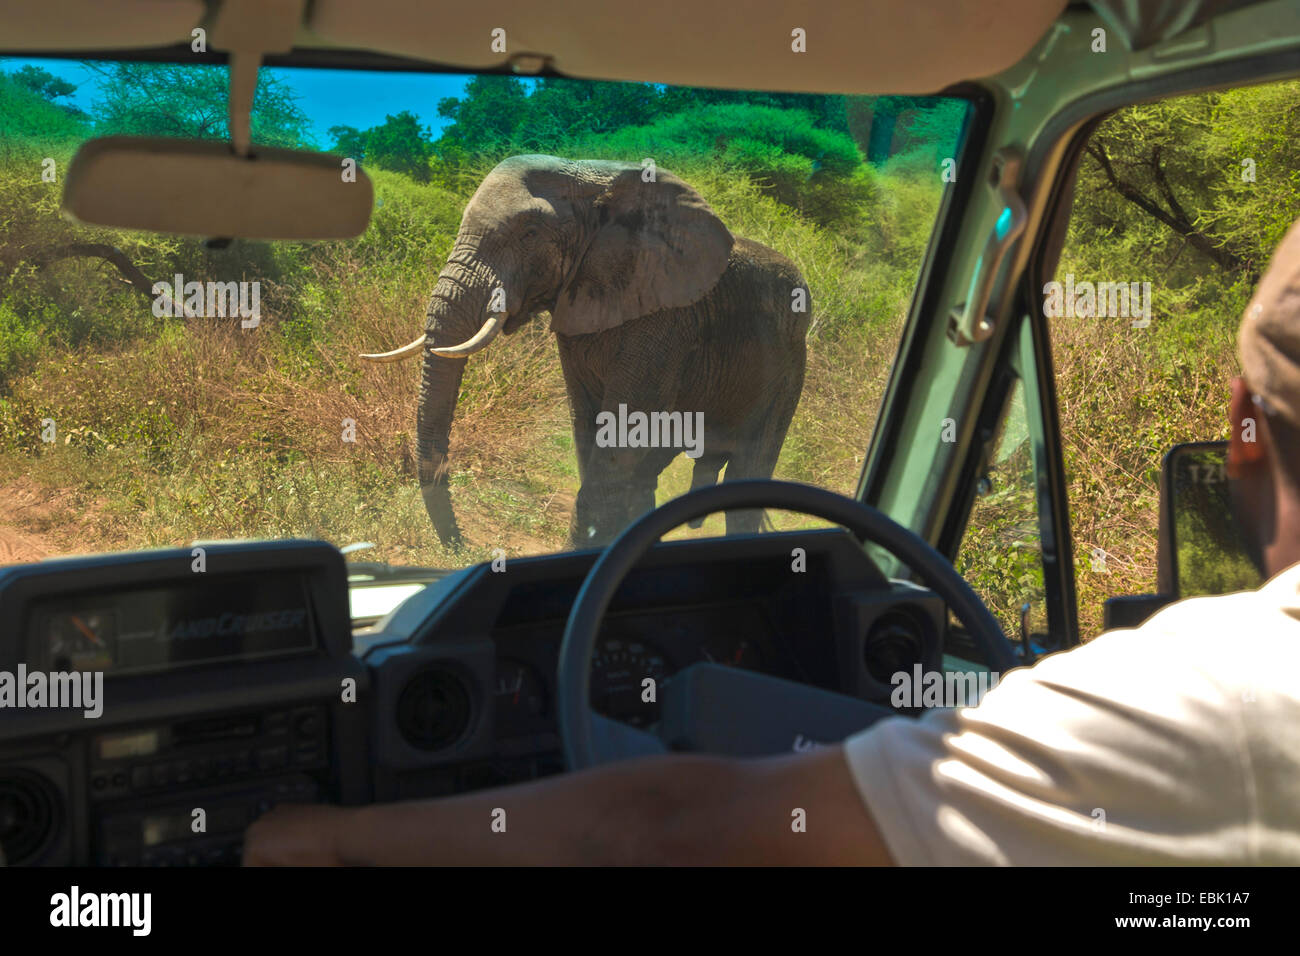 African elephant (Loxodonta africana), male elephant crossing the road in front of a car, Tanzania, Lake Manyara - Stock Image